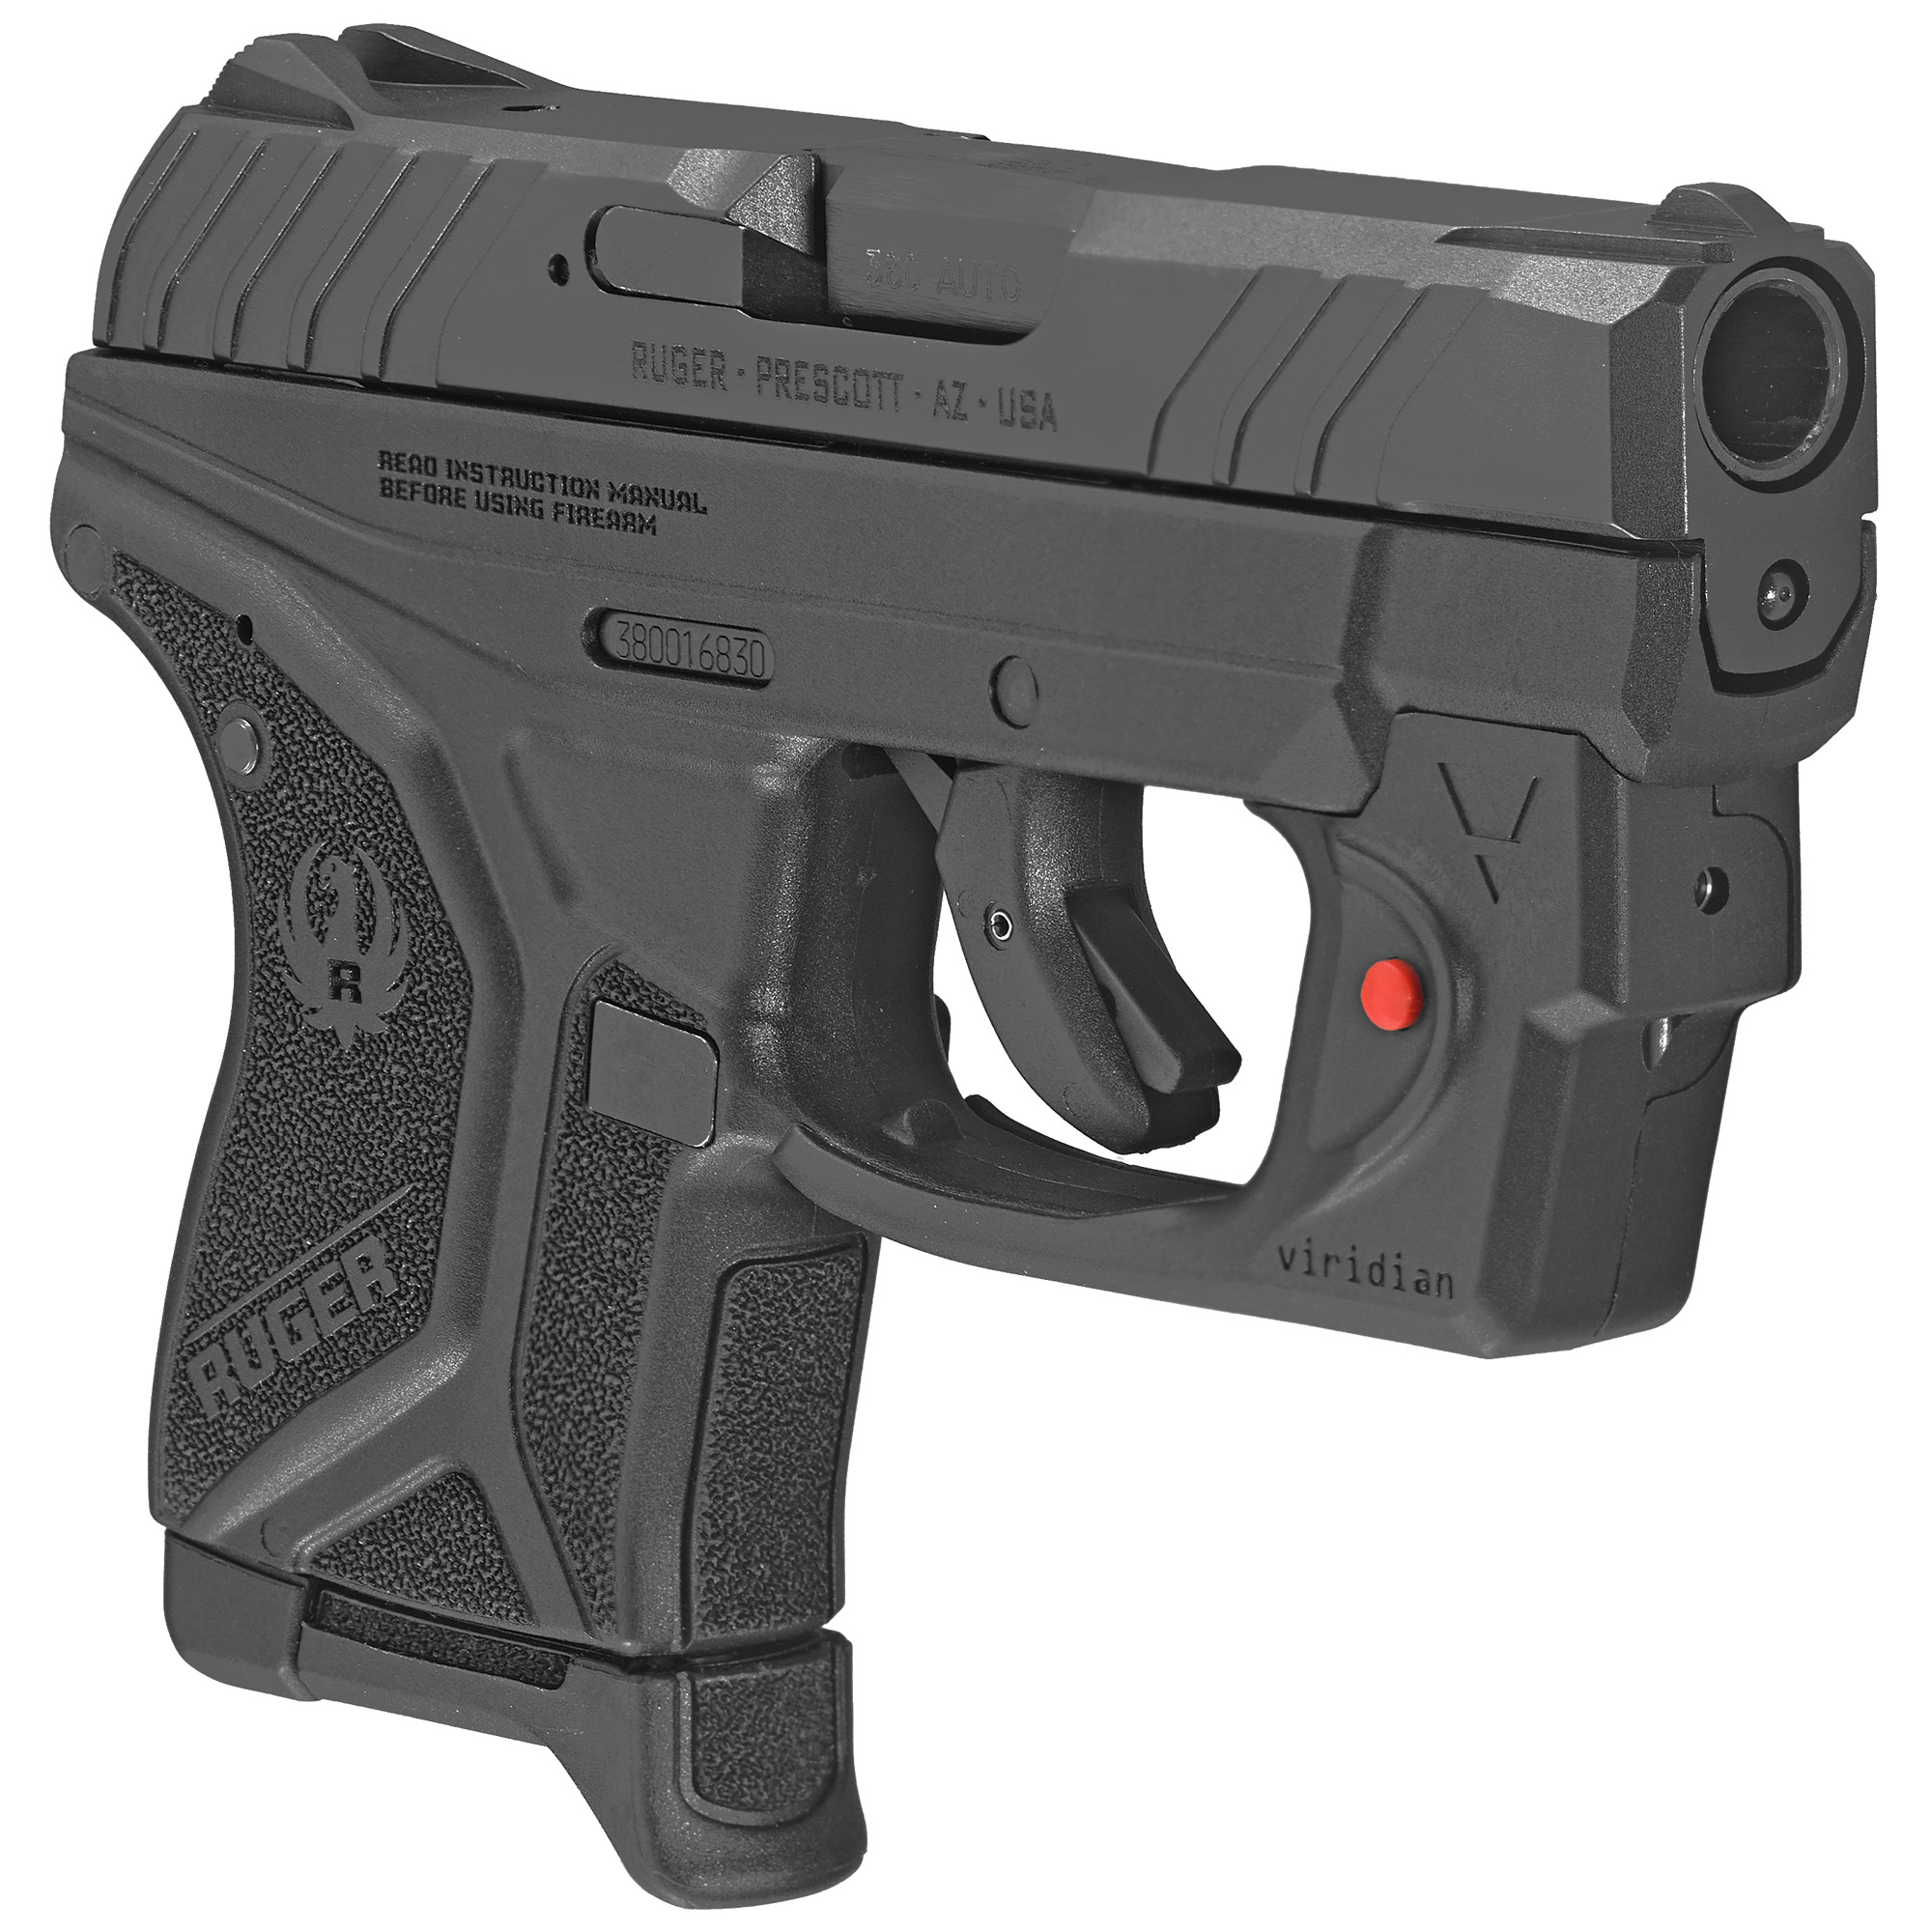 """The Ruger LCP II is the Best-In-Class Lightweight Compact Pistol. At just 5.17"""" long and 3.71"""" tall"""" the LCP II is designed to fit a variety of holsters and provide concealed carry options. It has a short"""" crisp trigger pull with a single action feel. The textured grip frame provides a secure and comfortable grip and the larger grip frame surface provides better distribution of recoil forces. The fixed front and rear sights are integral to the slide"""" while the hammer is recessed within the slide. Safety features include bladed trigger safety; neutrally balanced sear with significant engagement and strong spring tension; and hammer catch to help prevent the hammer from contacting the firing pin unless the trigger is pulled. Includes a finger grip extension floorplate that can be added to the magazine for comfort and grip"""" a pocket holster and one 6-round magazine."""